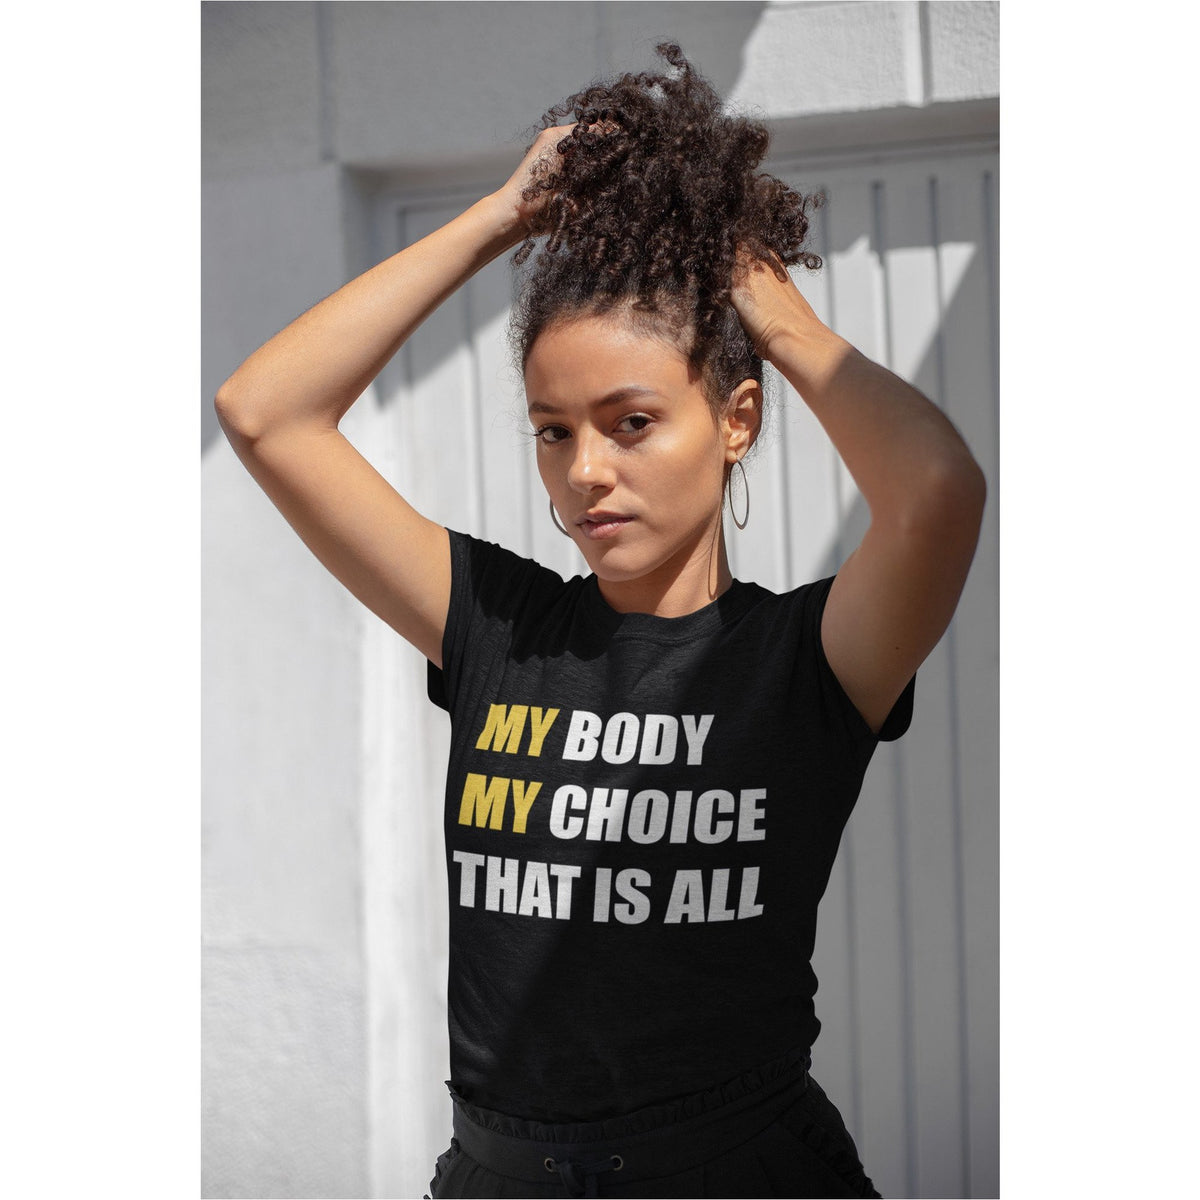 Pro Choice Women's Premium T-Shirt